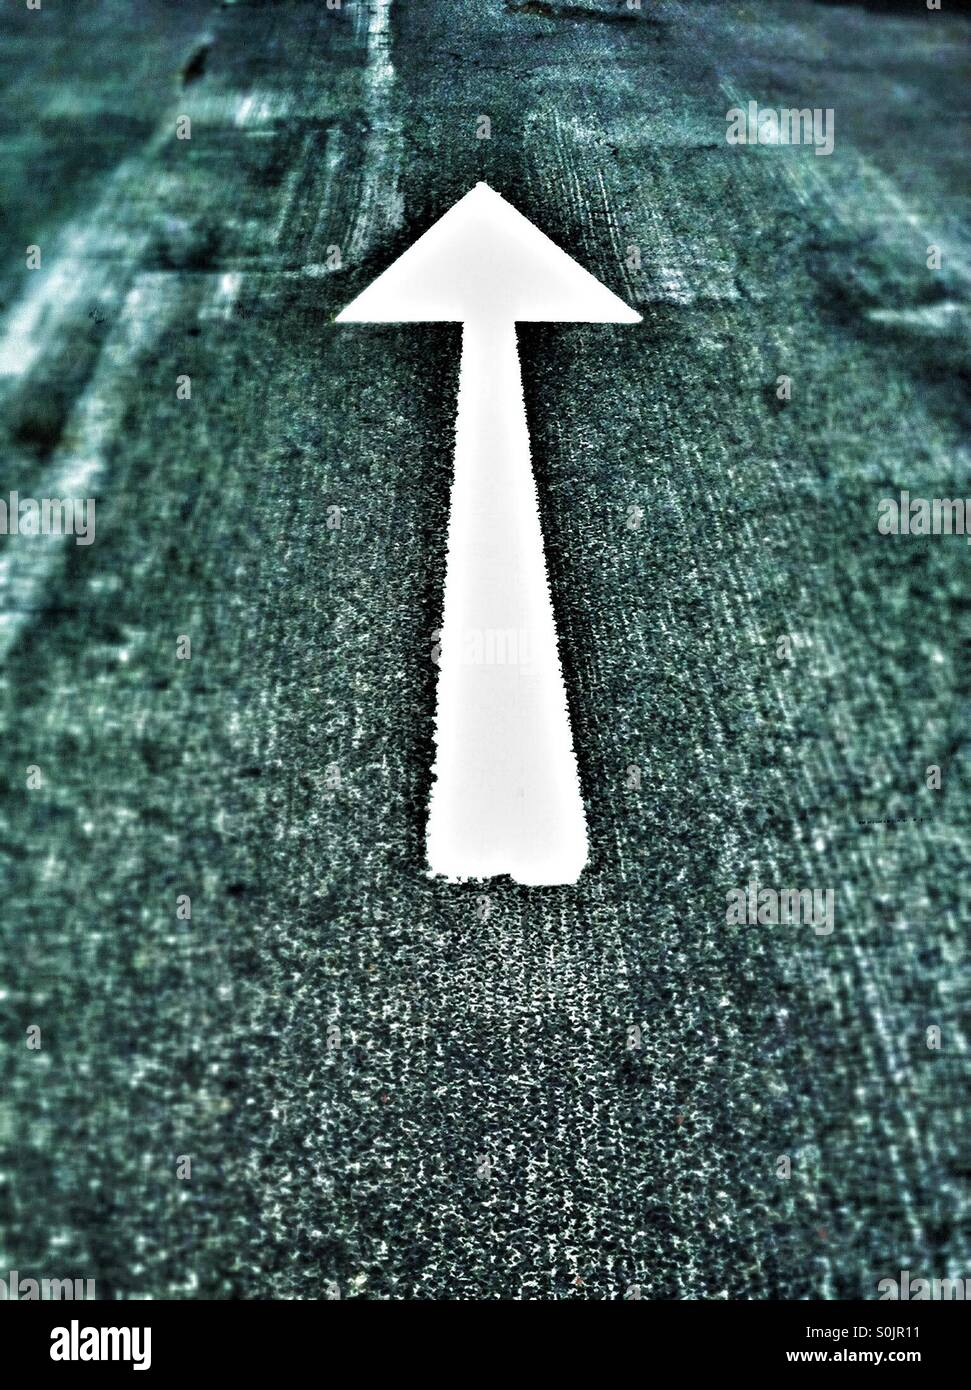 White arrow painted on road - Stock Image